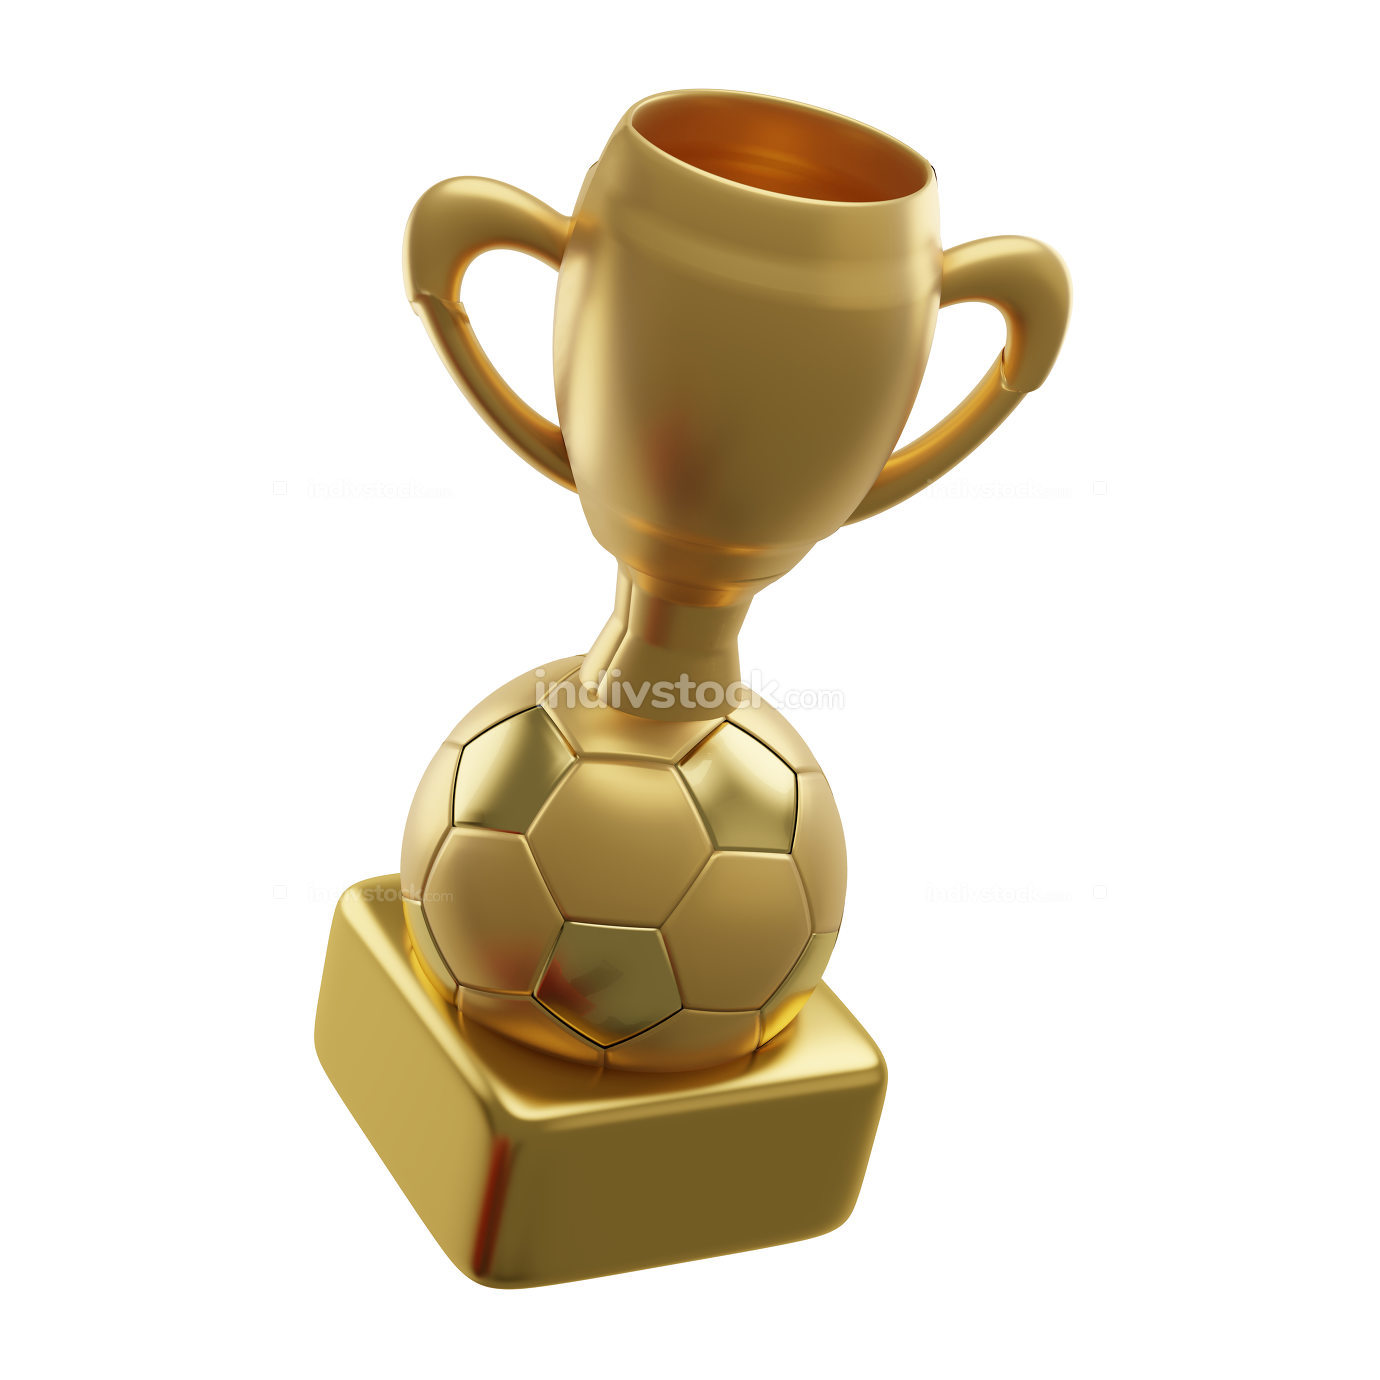 free download: golden soccer ball trophy 3d-illustration